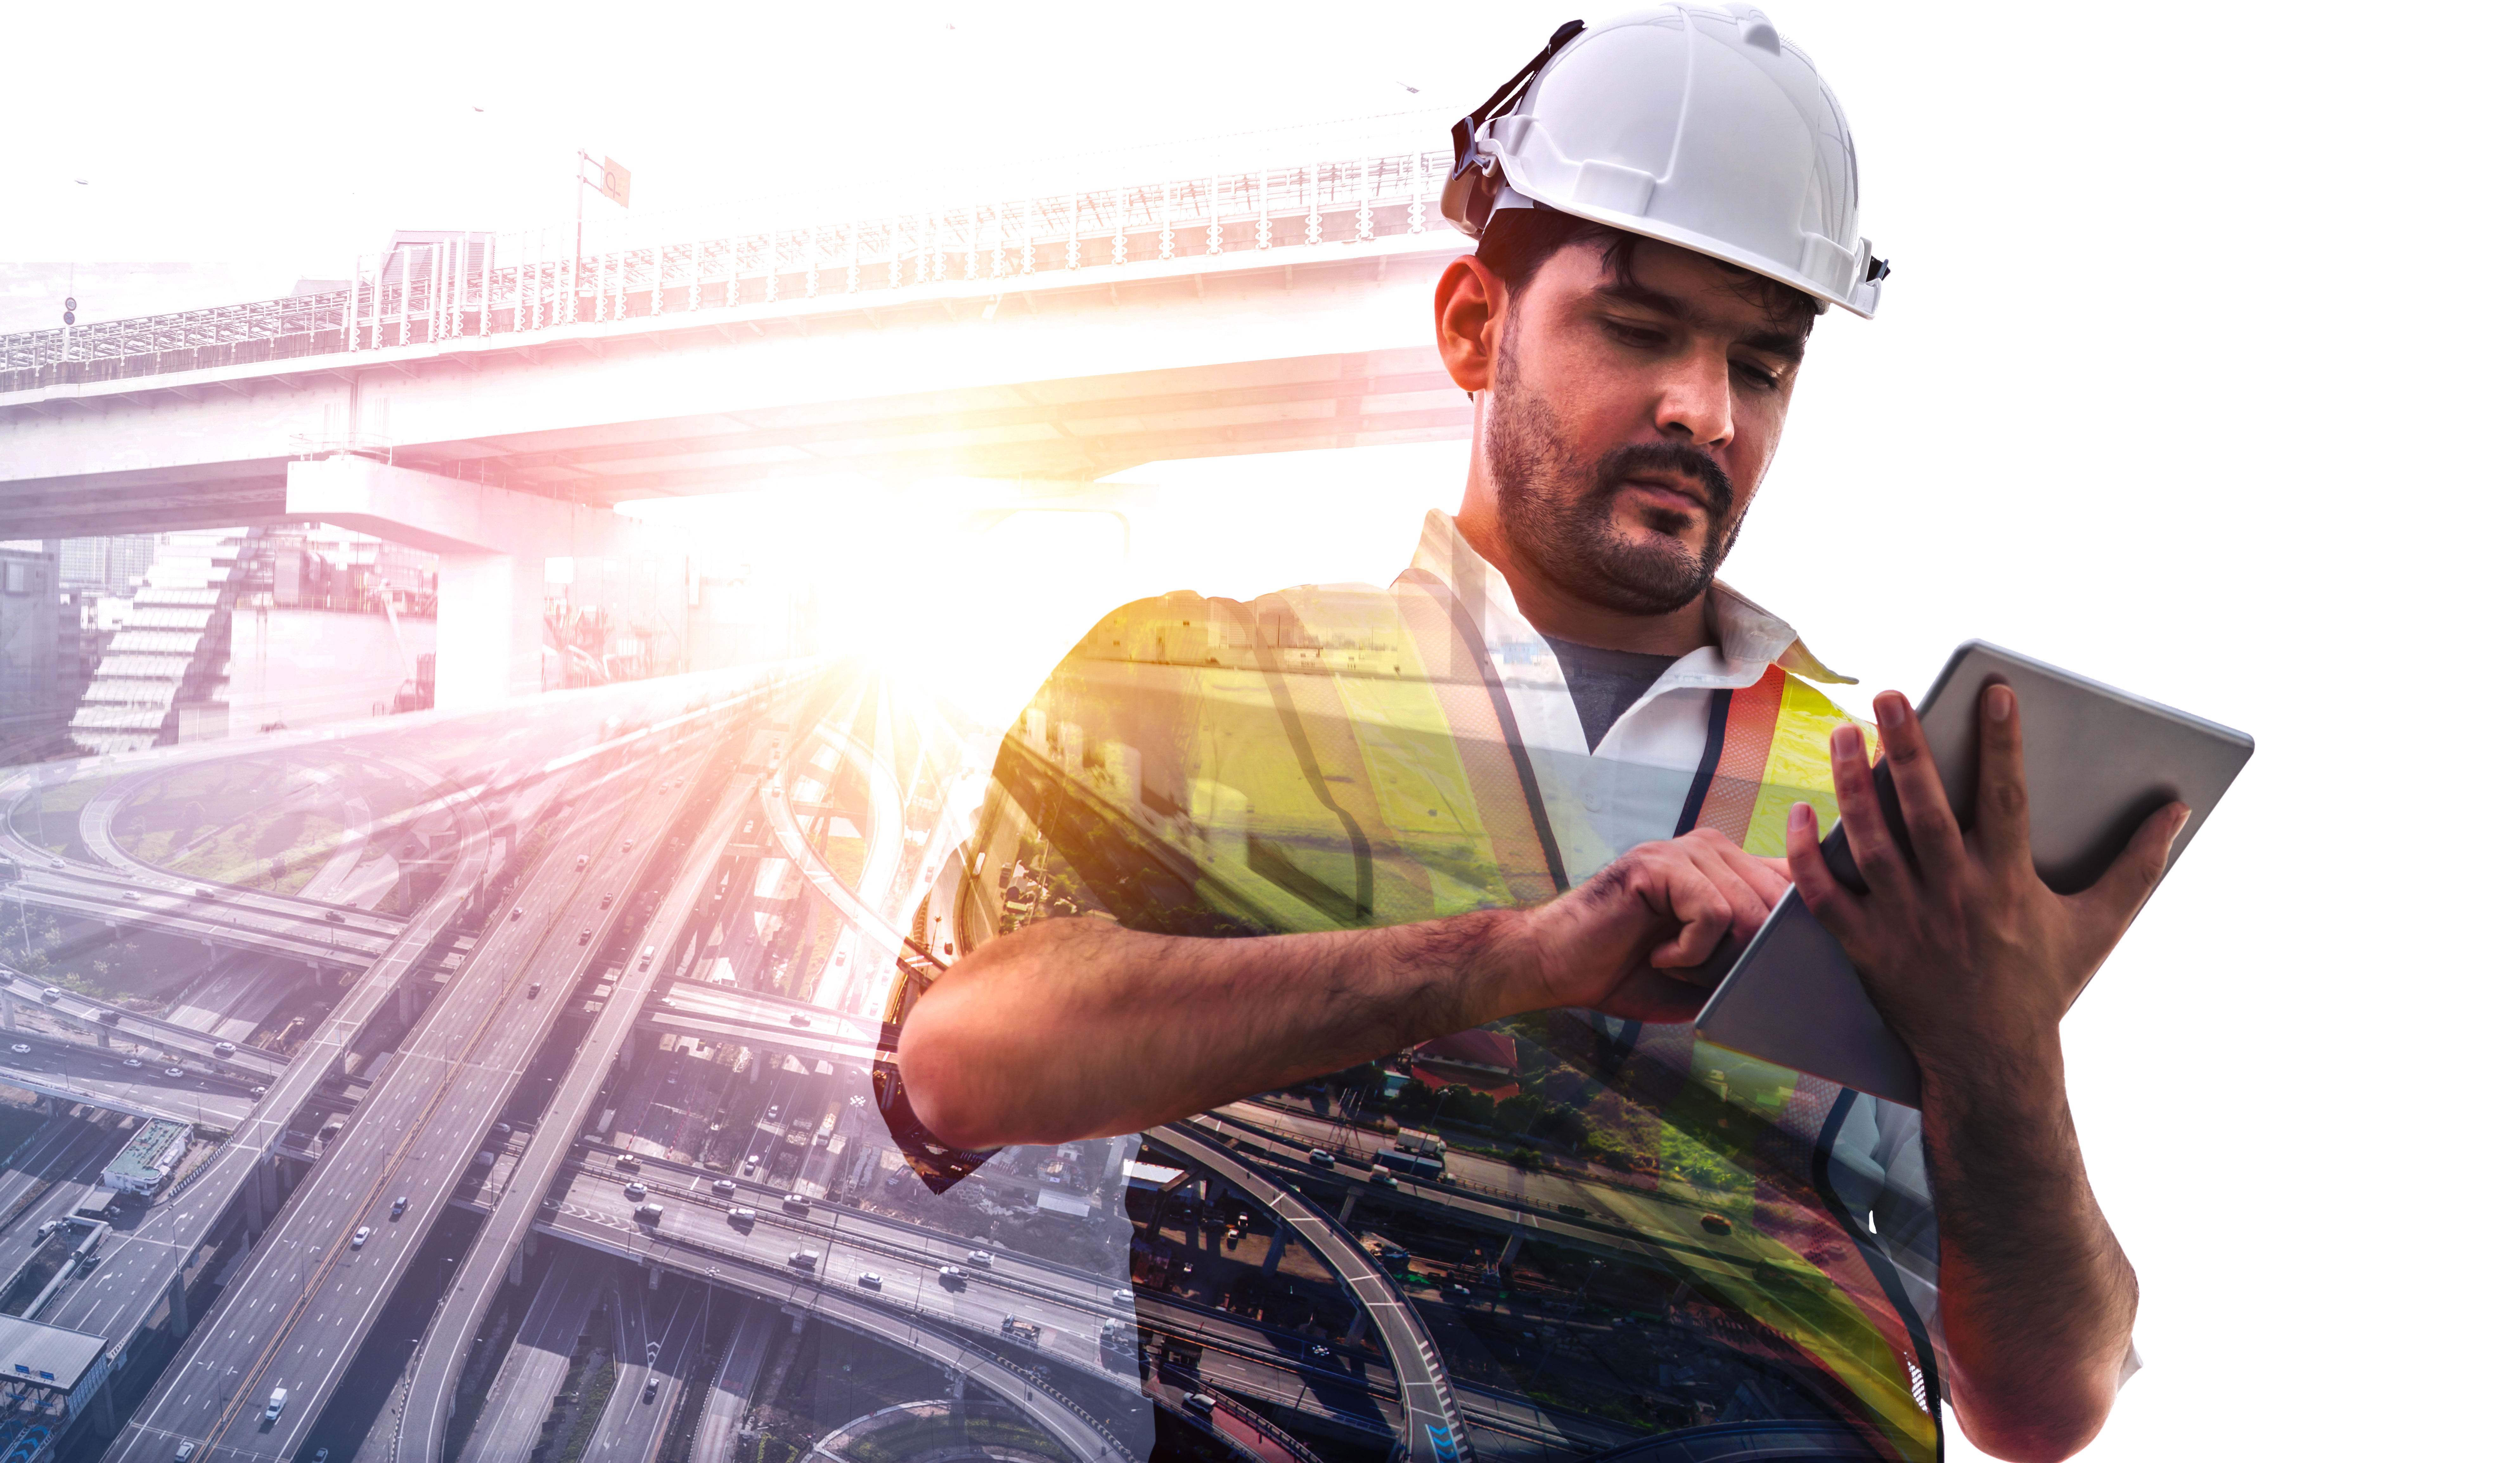 Top trends impacting the future of the construction industry